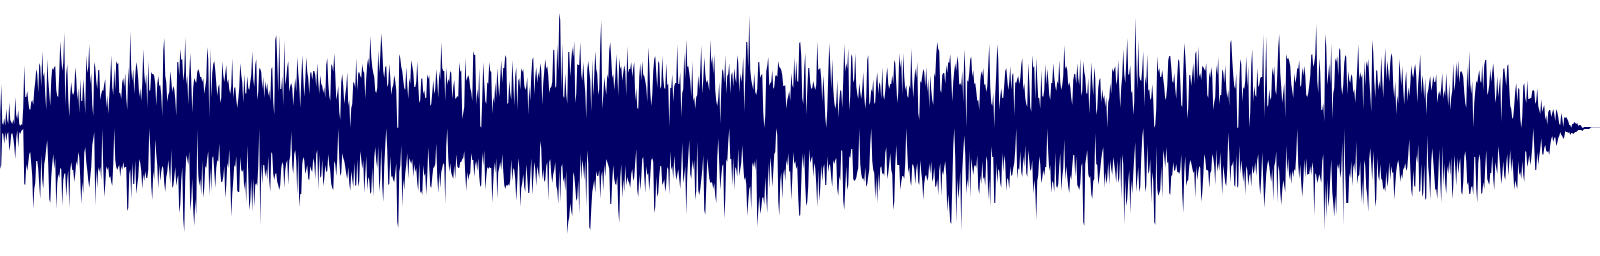 waveform of track #146226